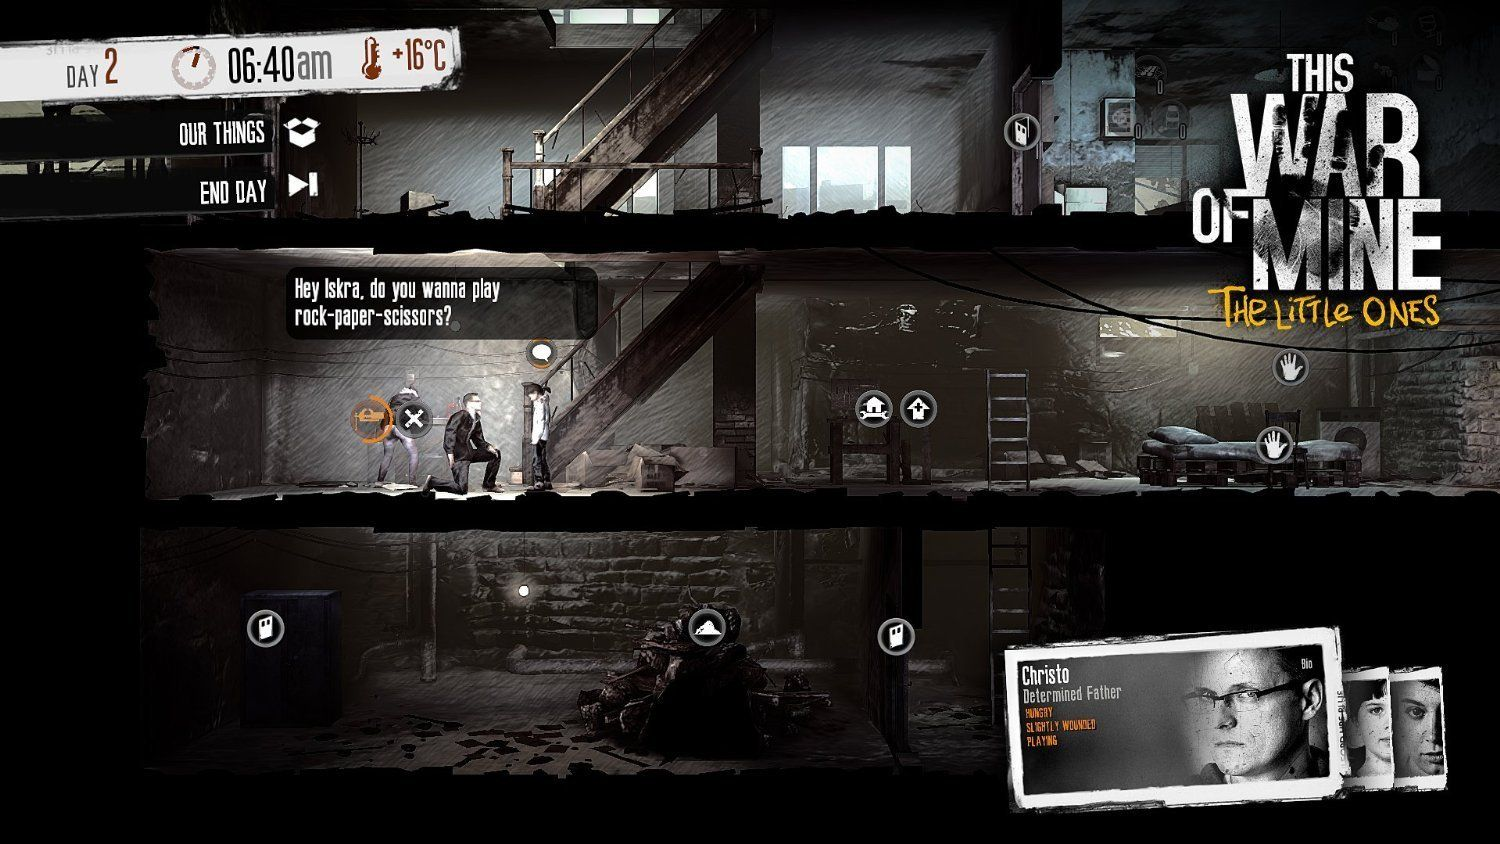 This War Of Mine: The Little Ones (PS4) - 4